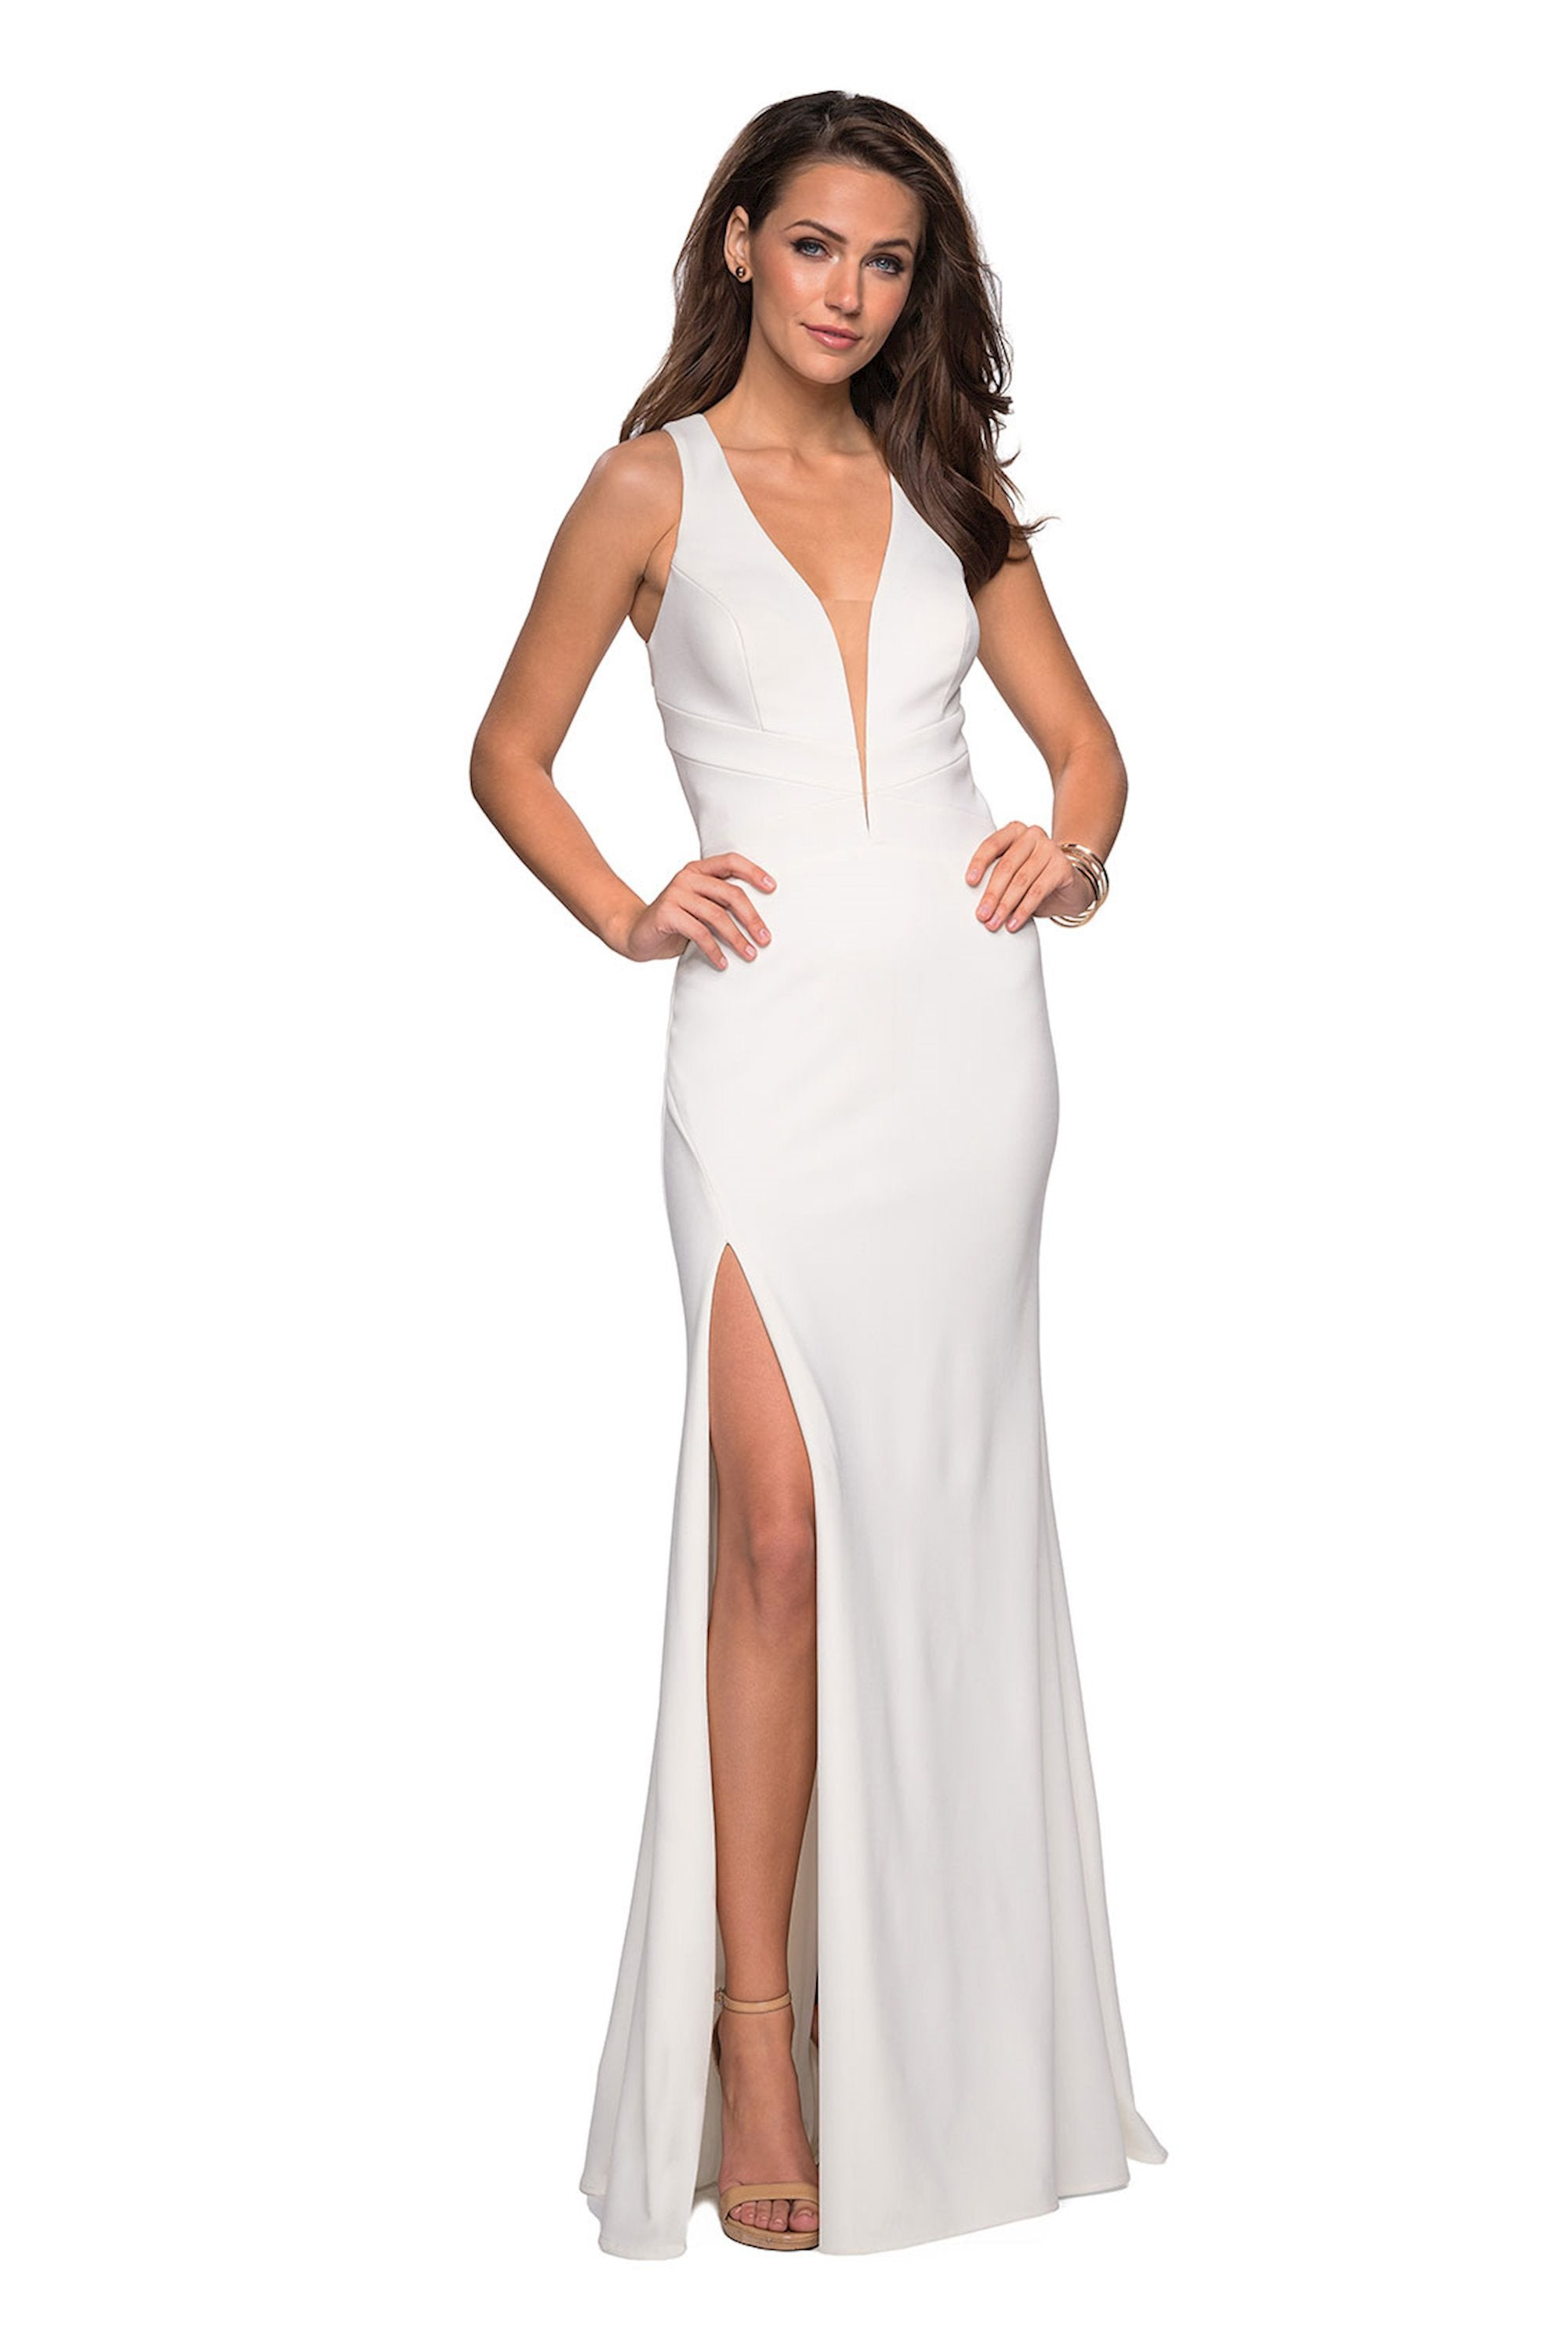 La Femme - Double Cross-Strapped High Slit Gown 27082 In White